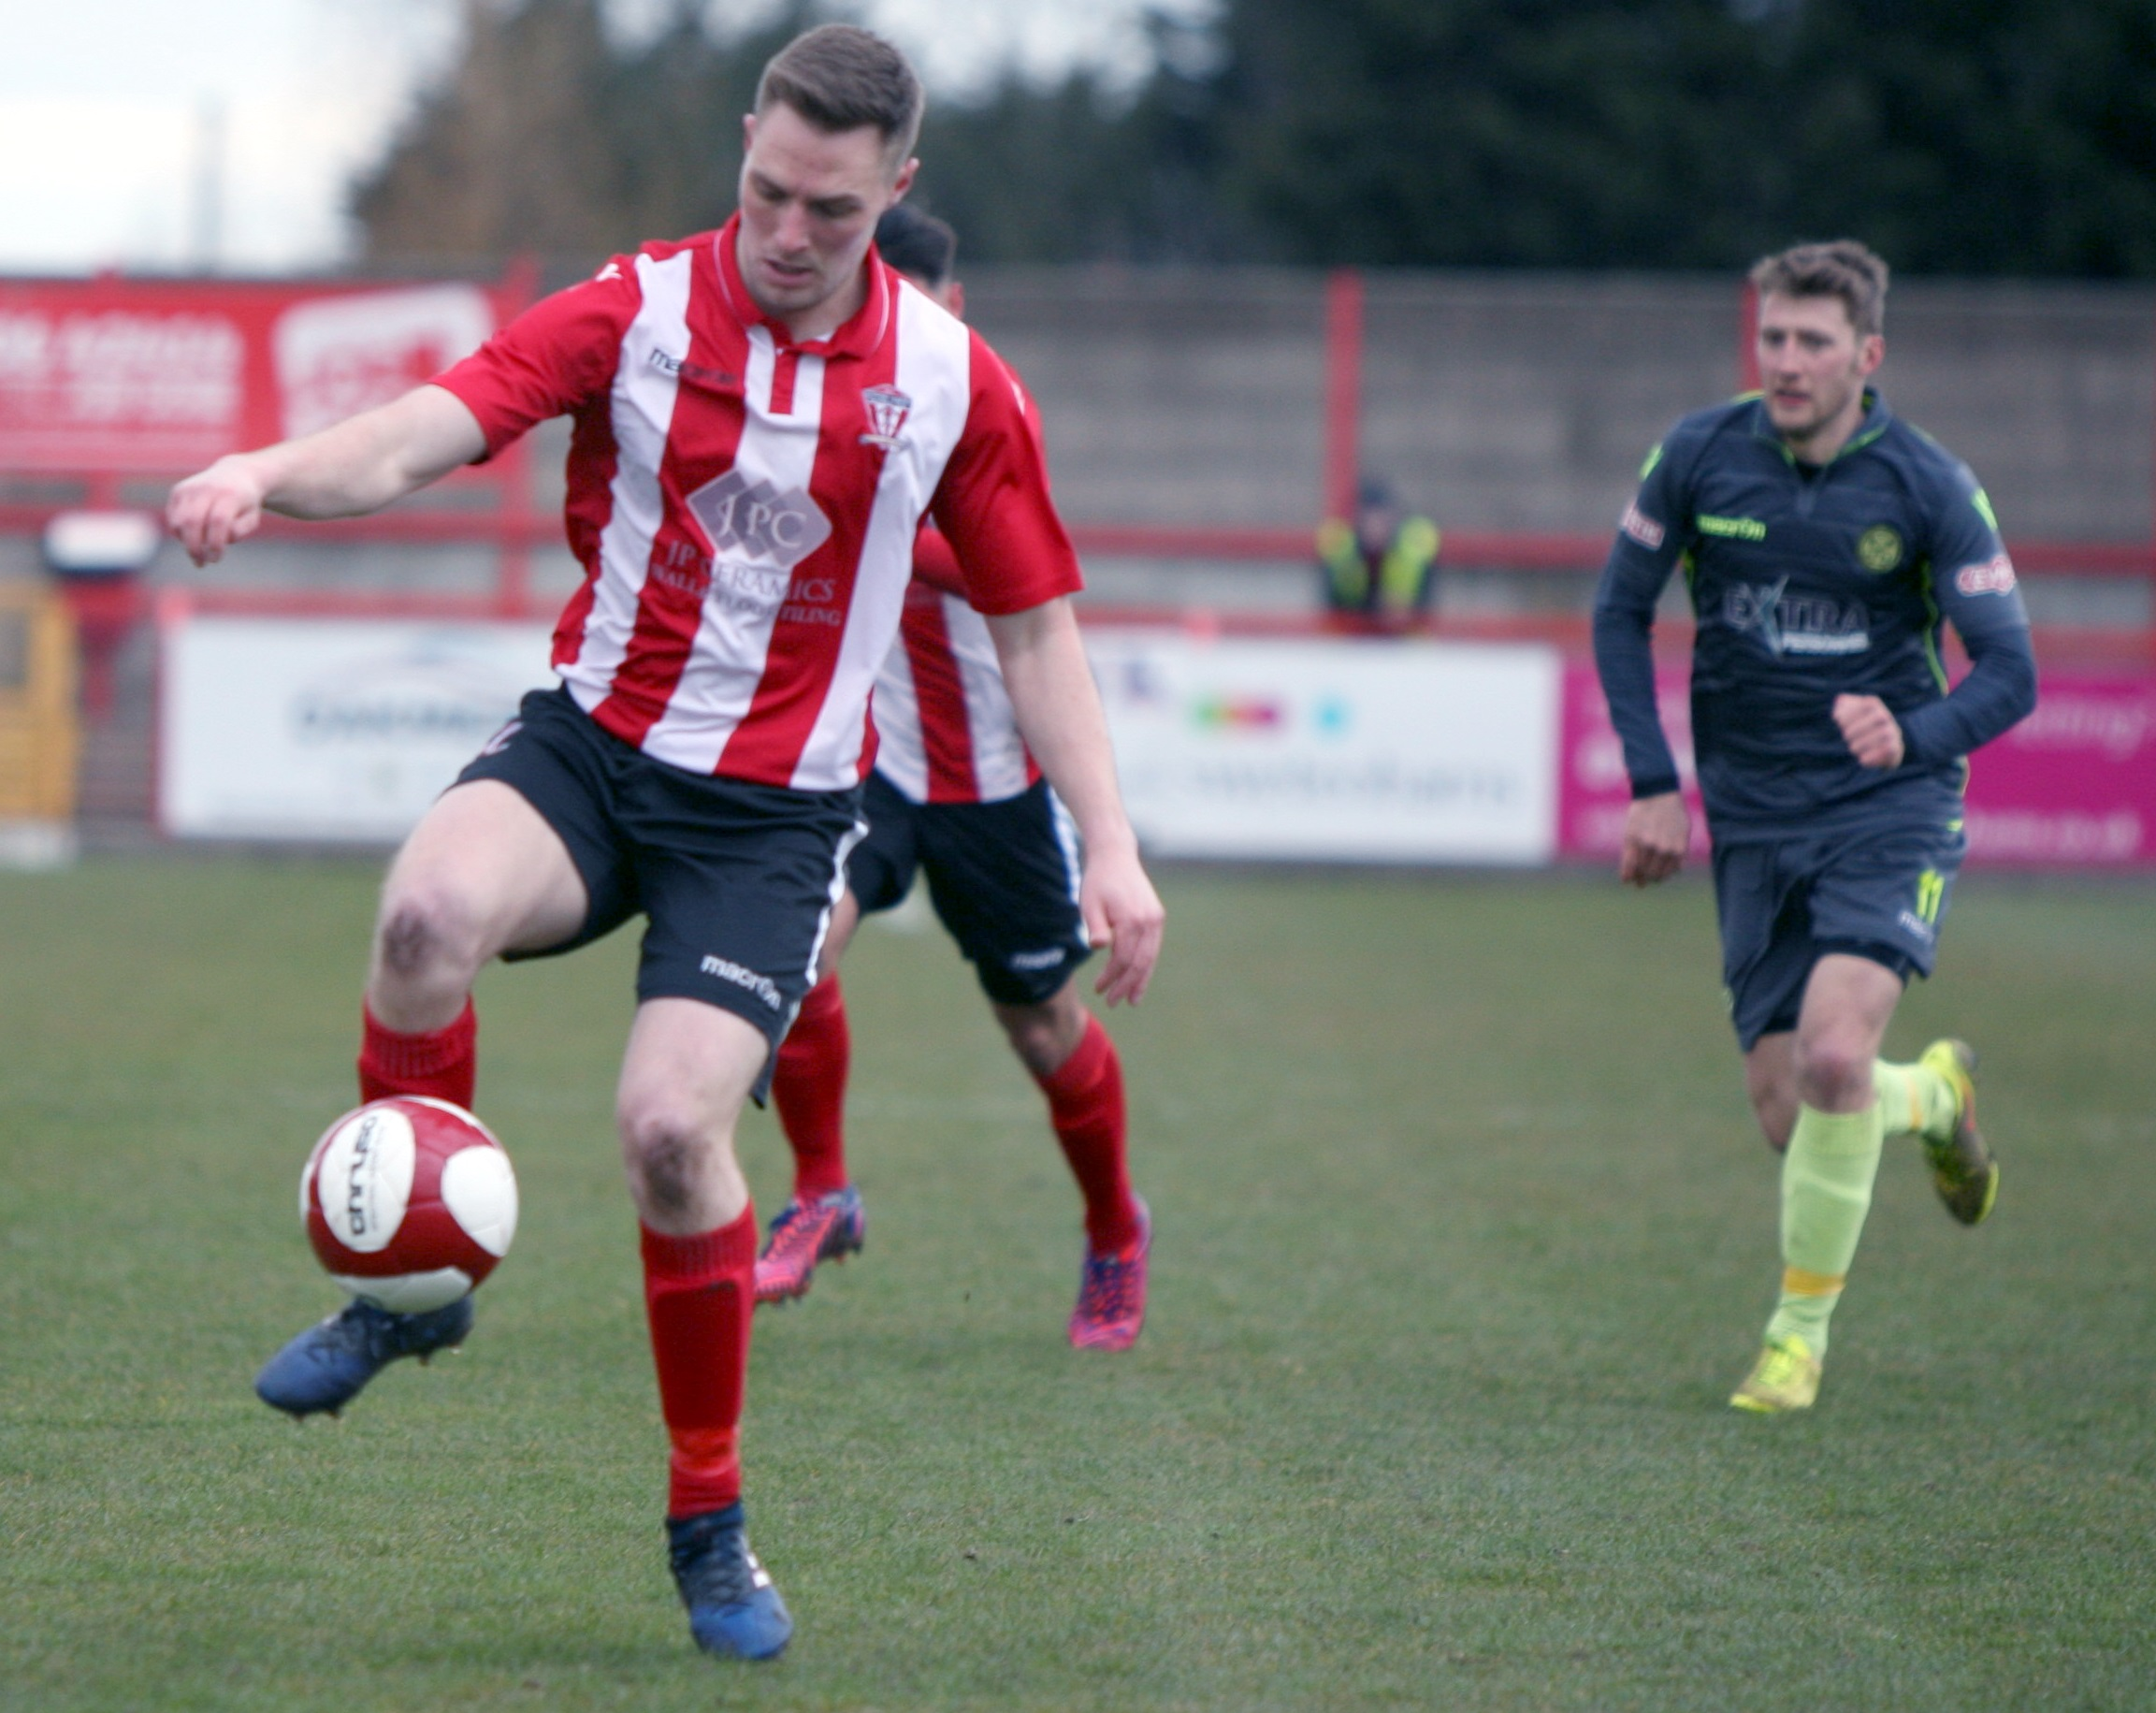 Steven Tames was on target for Witton Albion from the penalty spot during a 2-1 defeat at home to Stafford Rangers in the Northern Premier League on Saturday